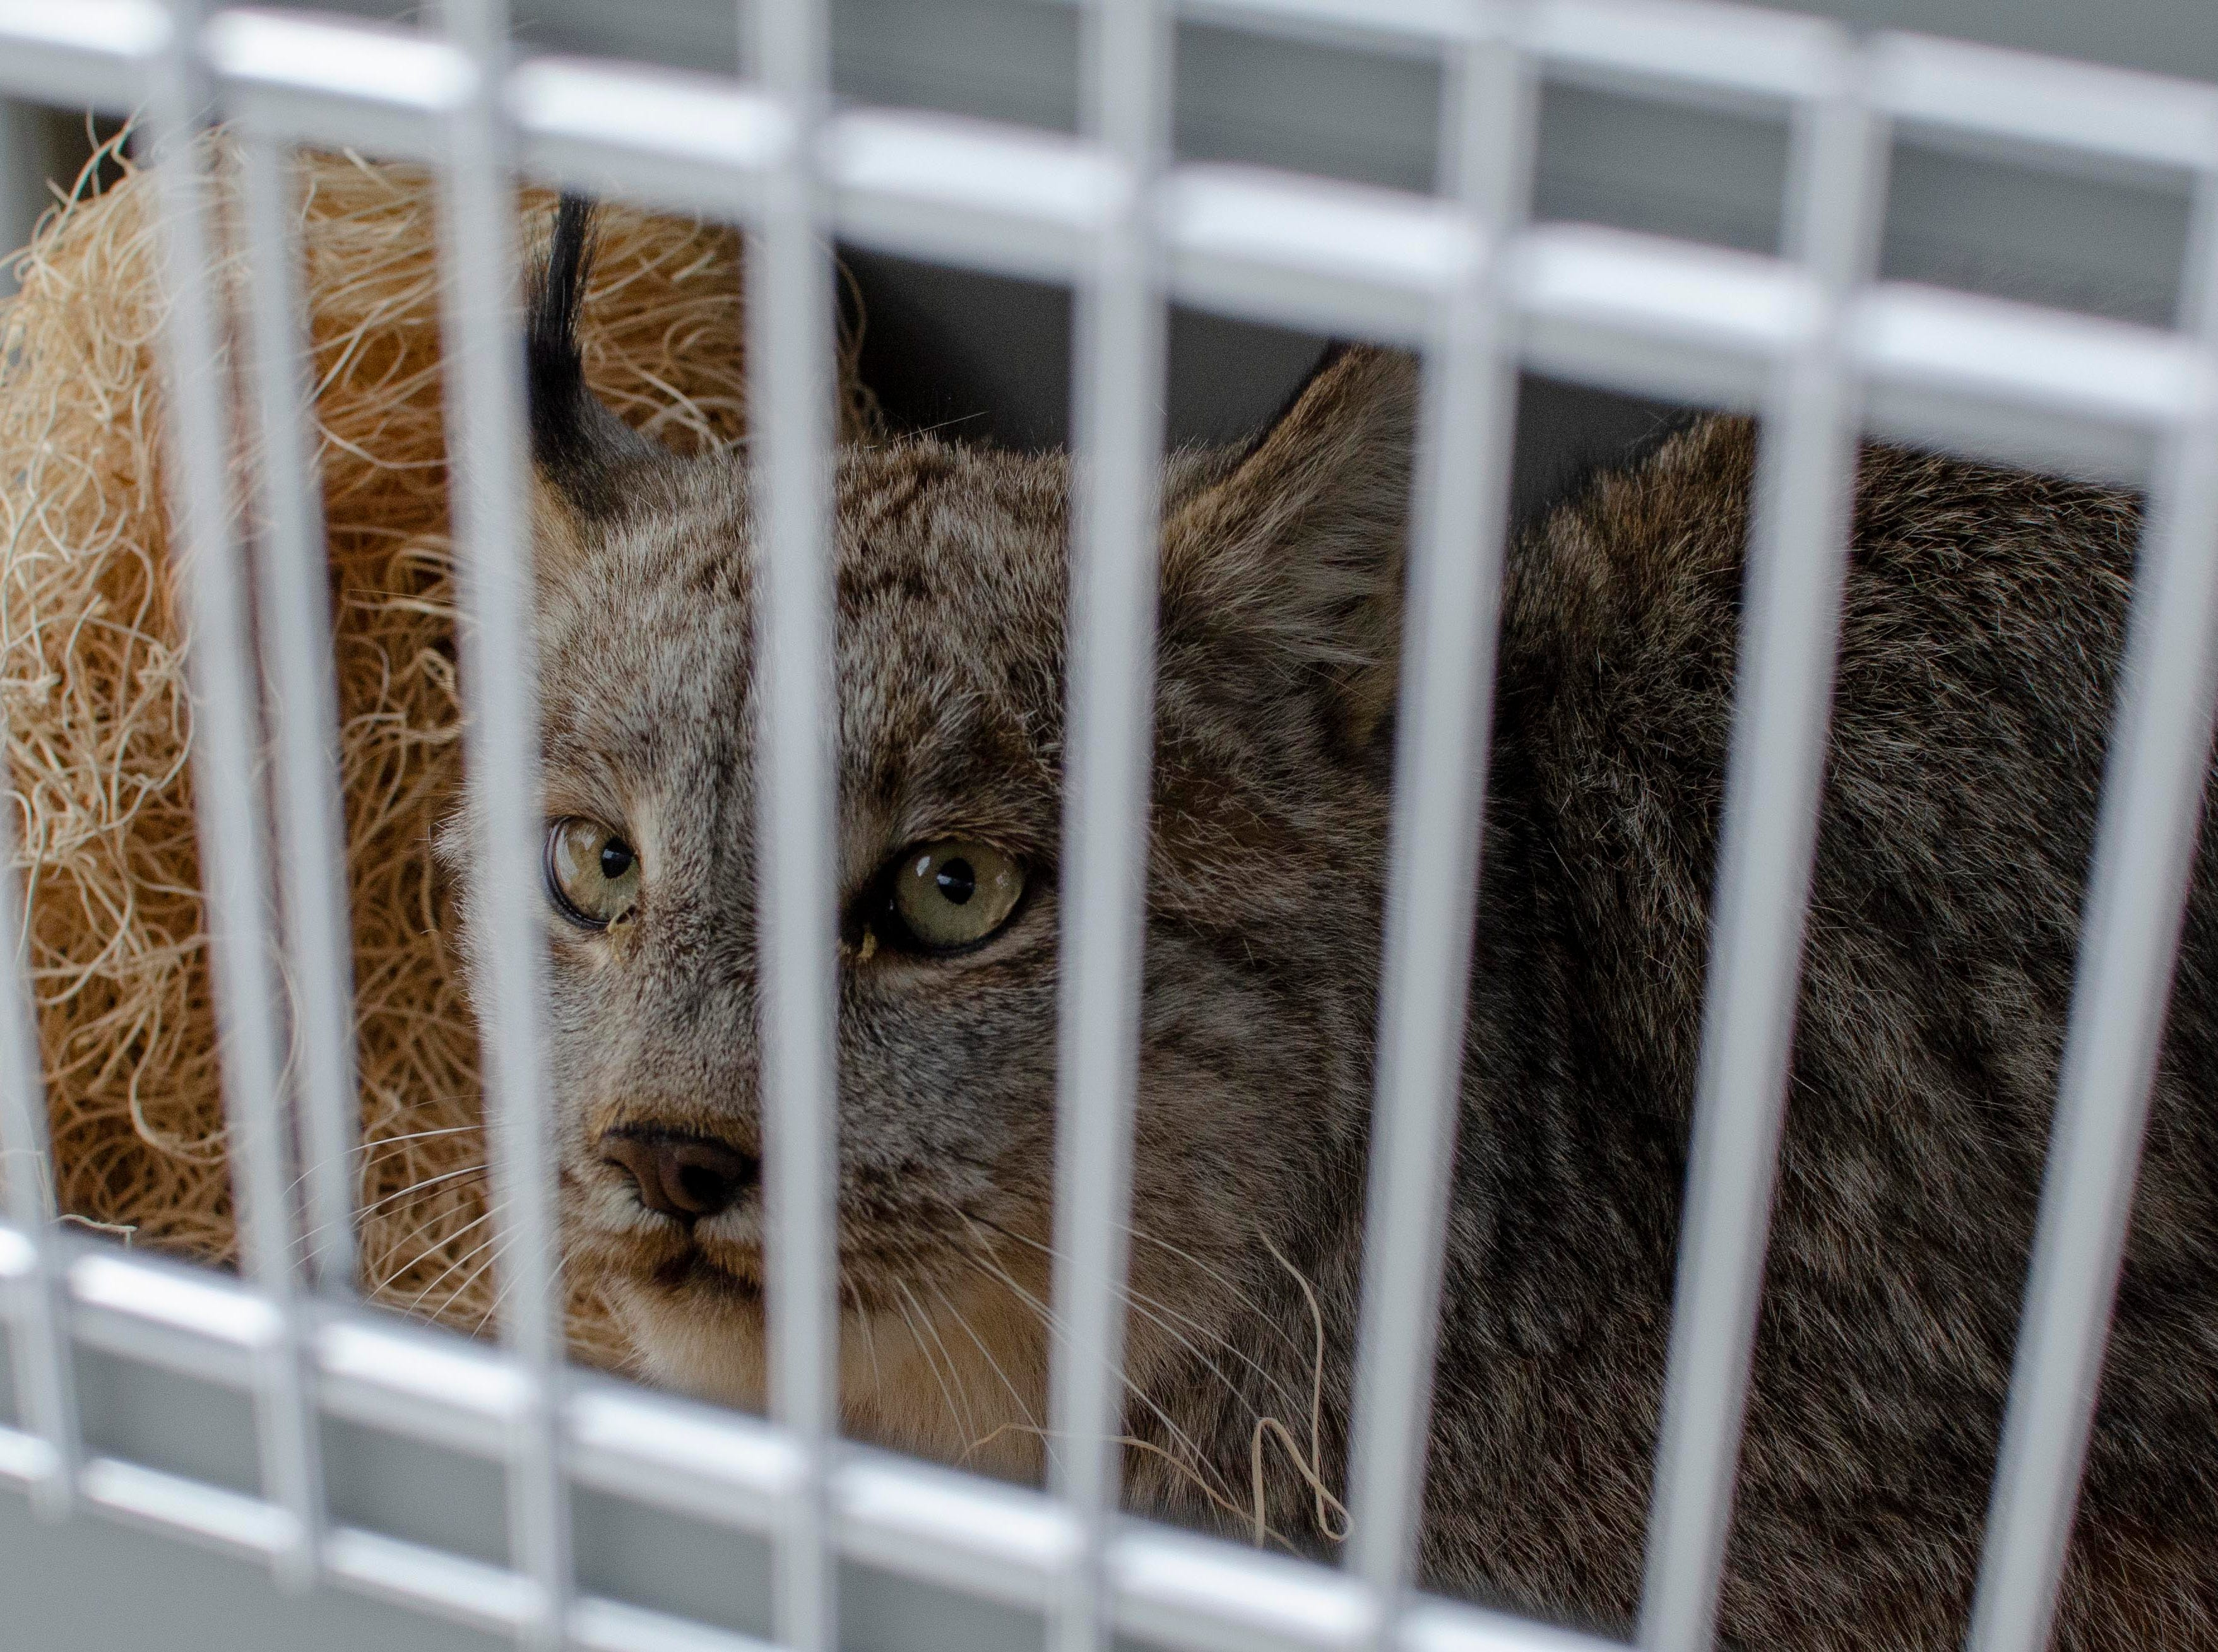 A female Canada lynx looks out of a wildlife carrier just before being released safely to the wild.